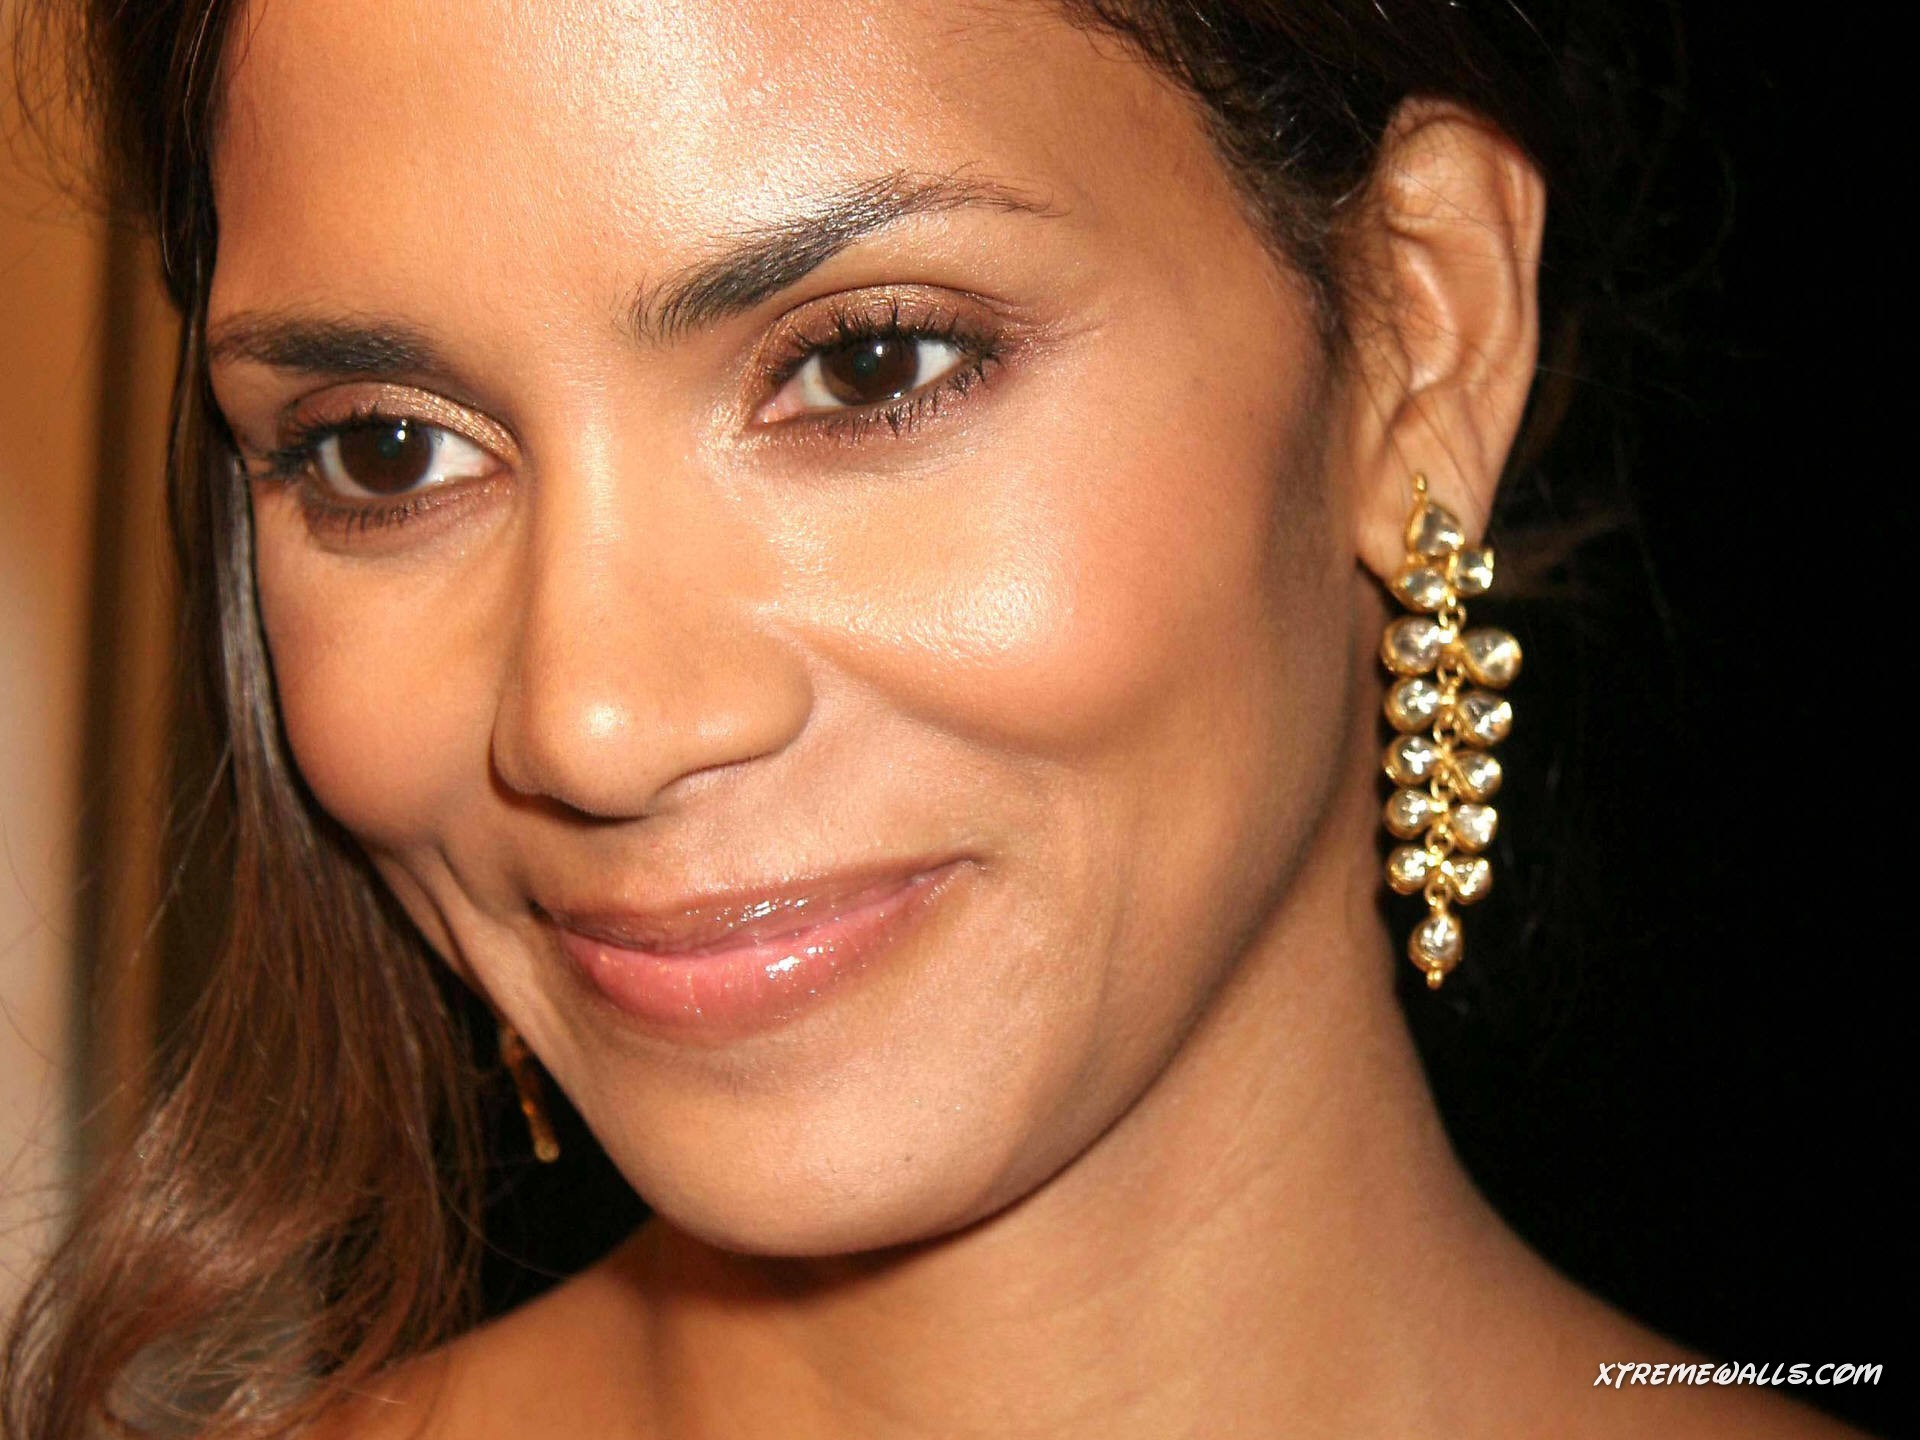 Women halle berry girl HD Wallpaper